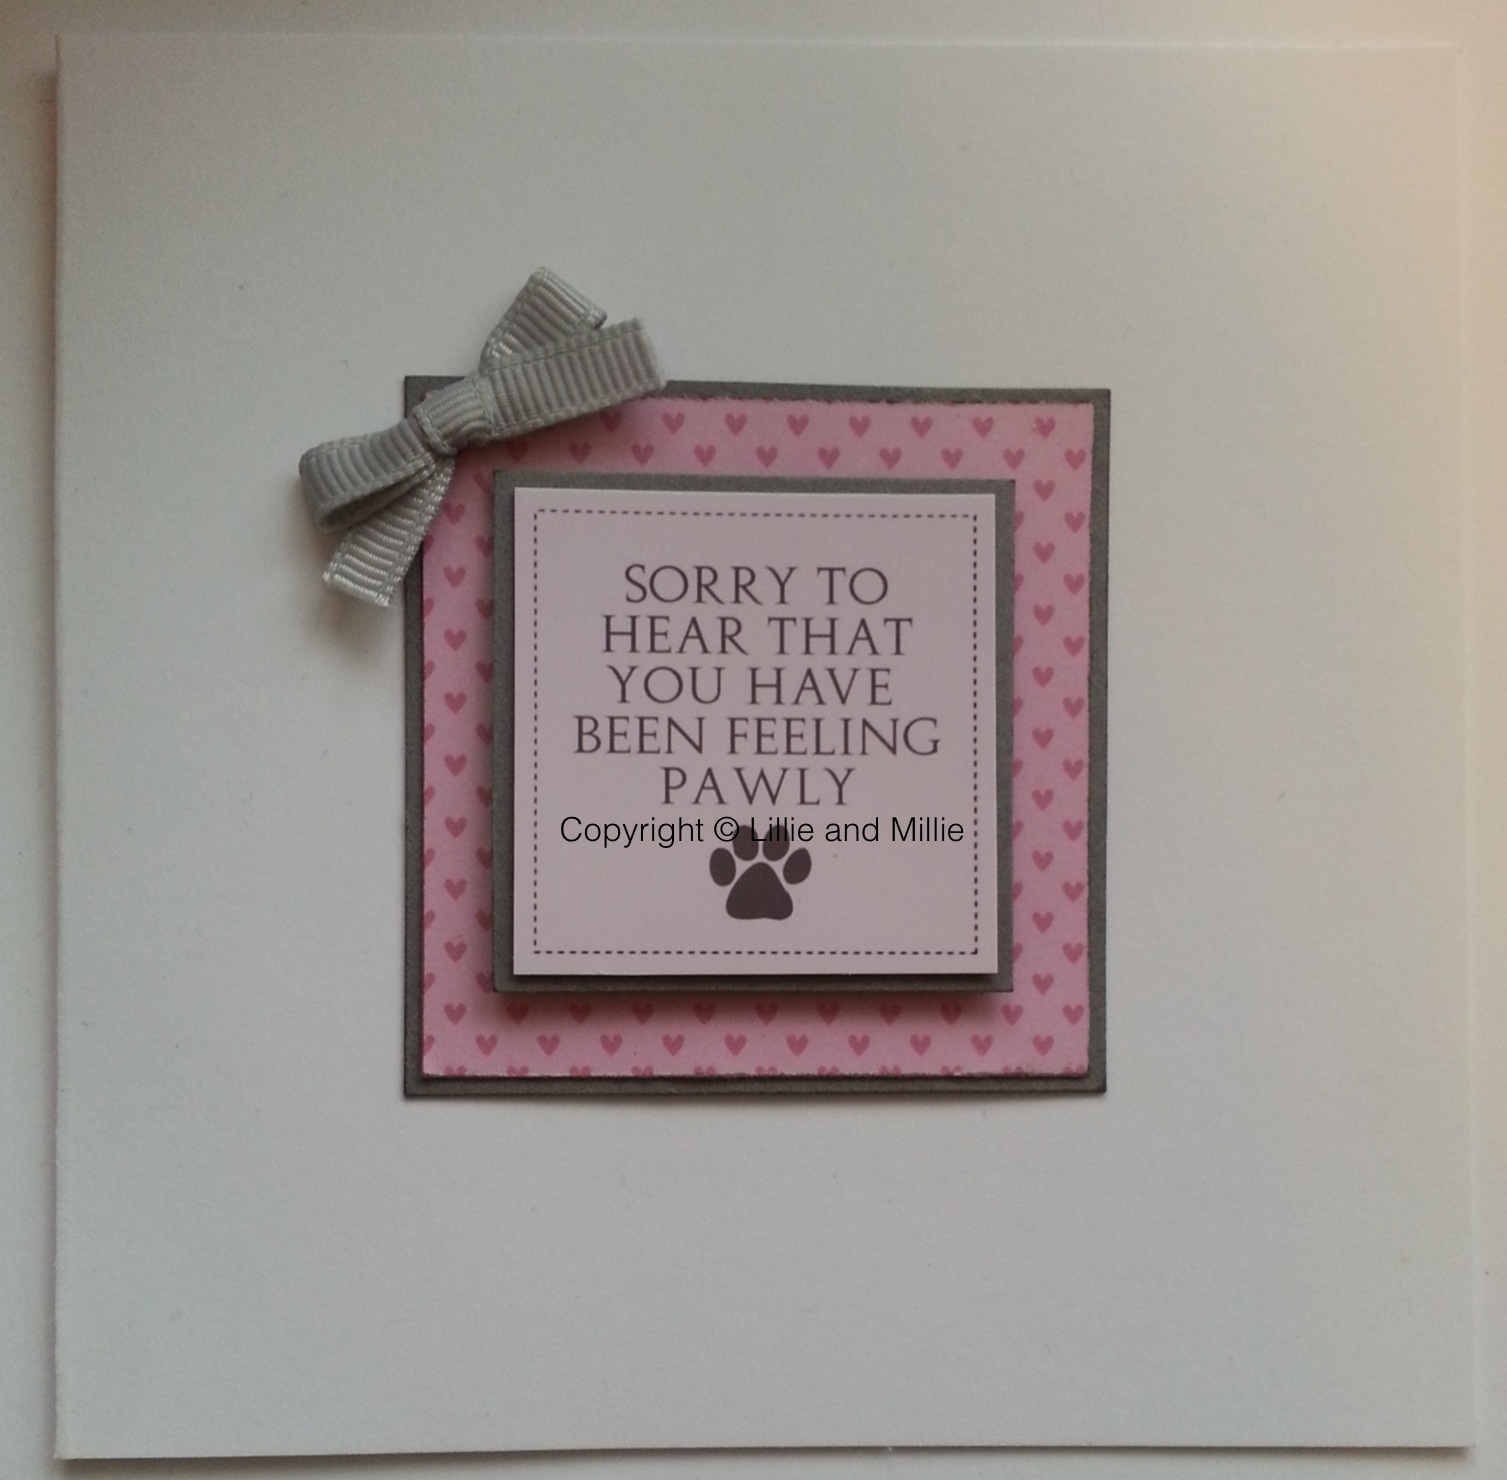 Handcrafted Handmade Dog Greetings Get Well Soon Pawly Poorly Card